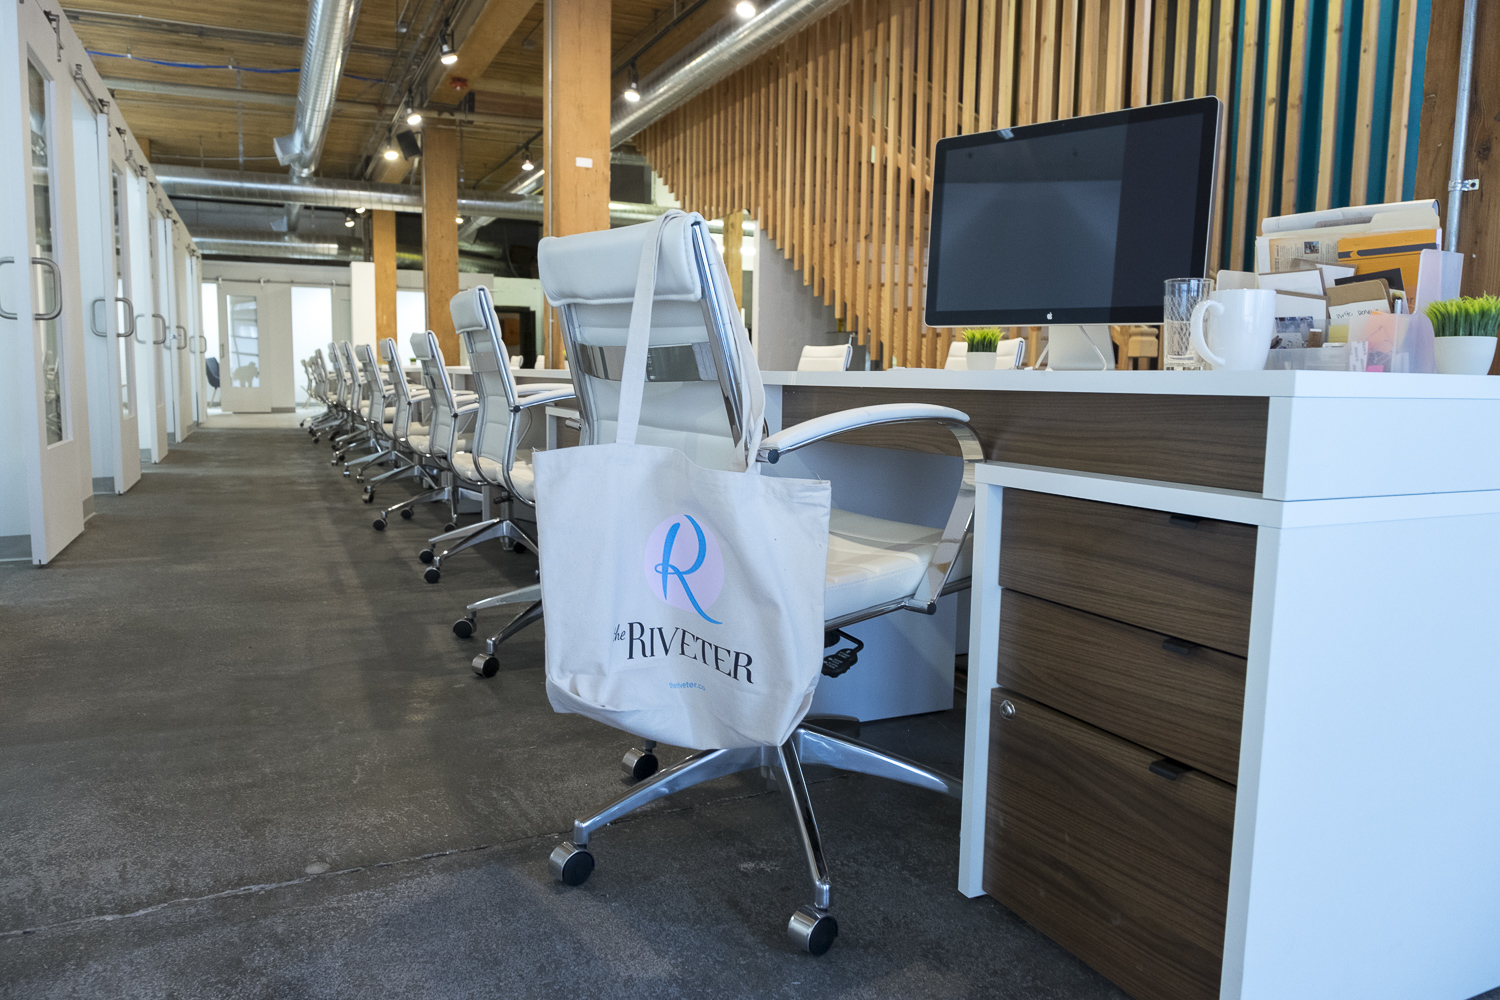 Permanent desks at The Riveter (Image: Paola Thomas/Seattle Refined)